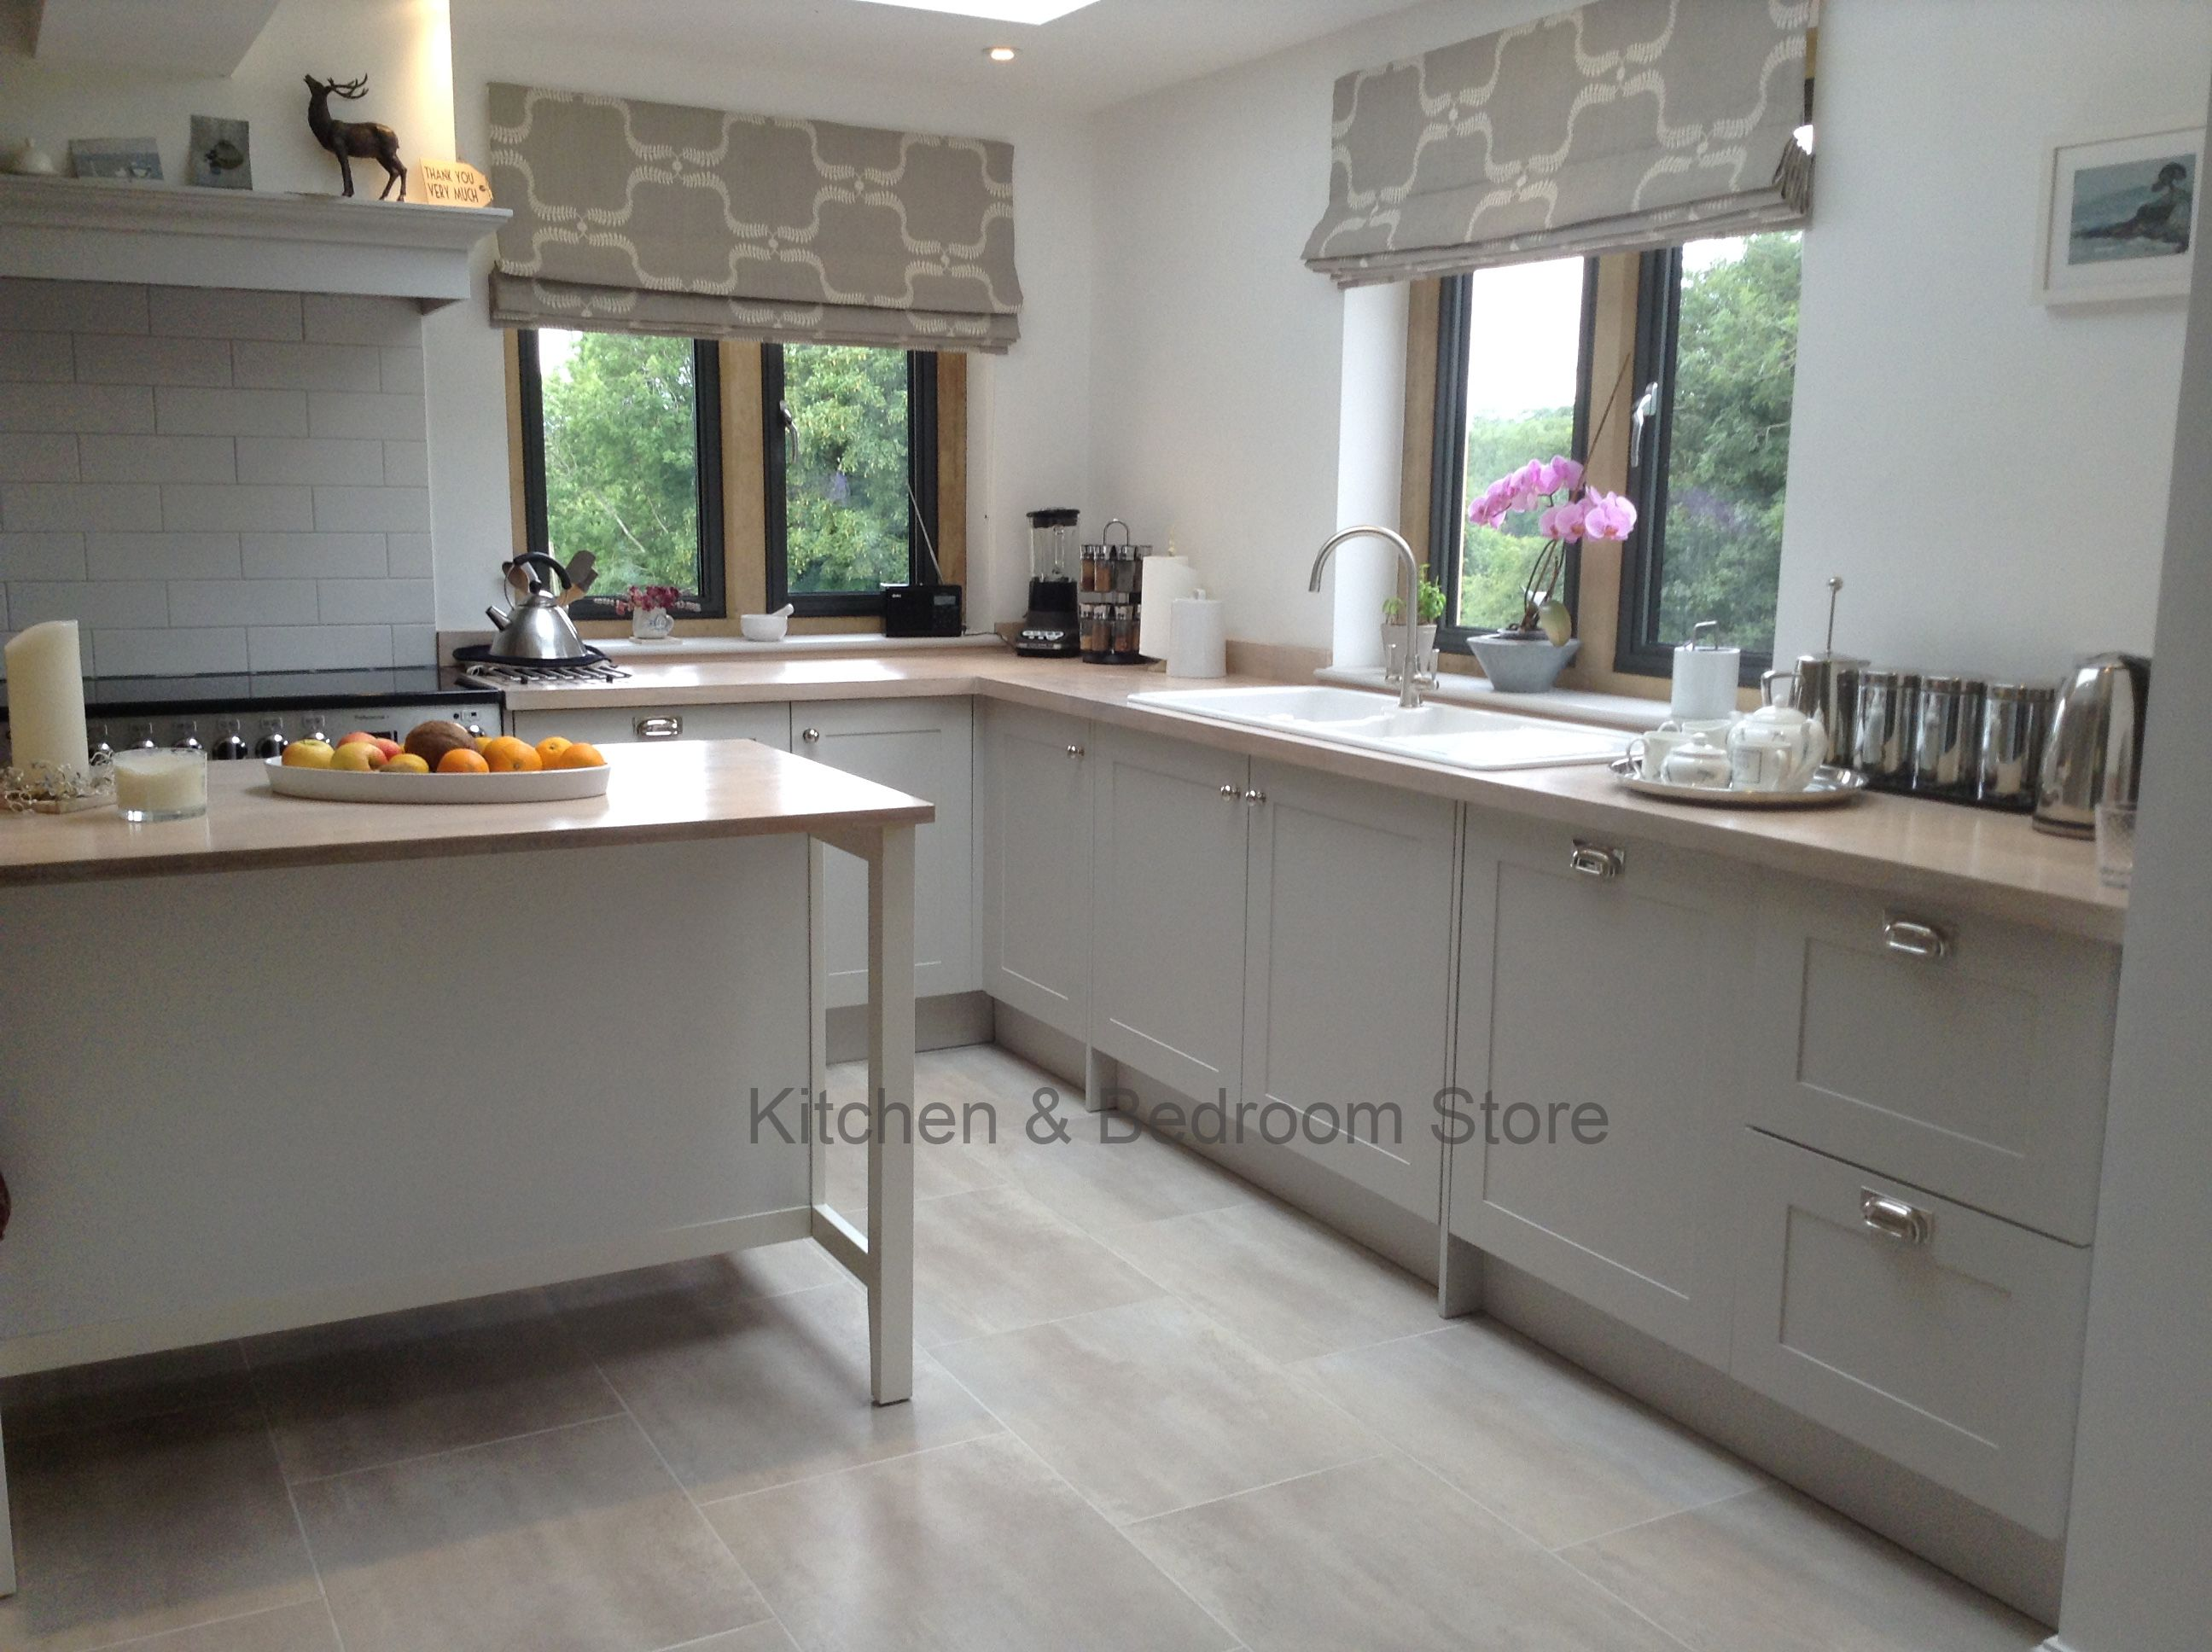 Best Painted Shaker Style Kitchen With A Modern Country Feel 640 x 480